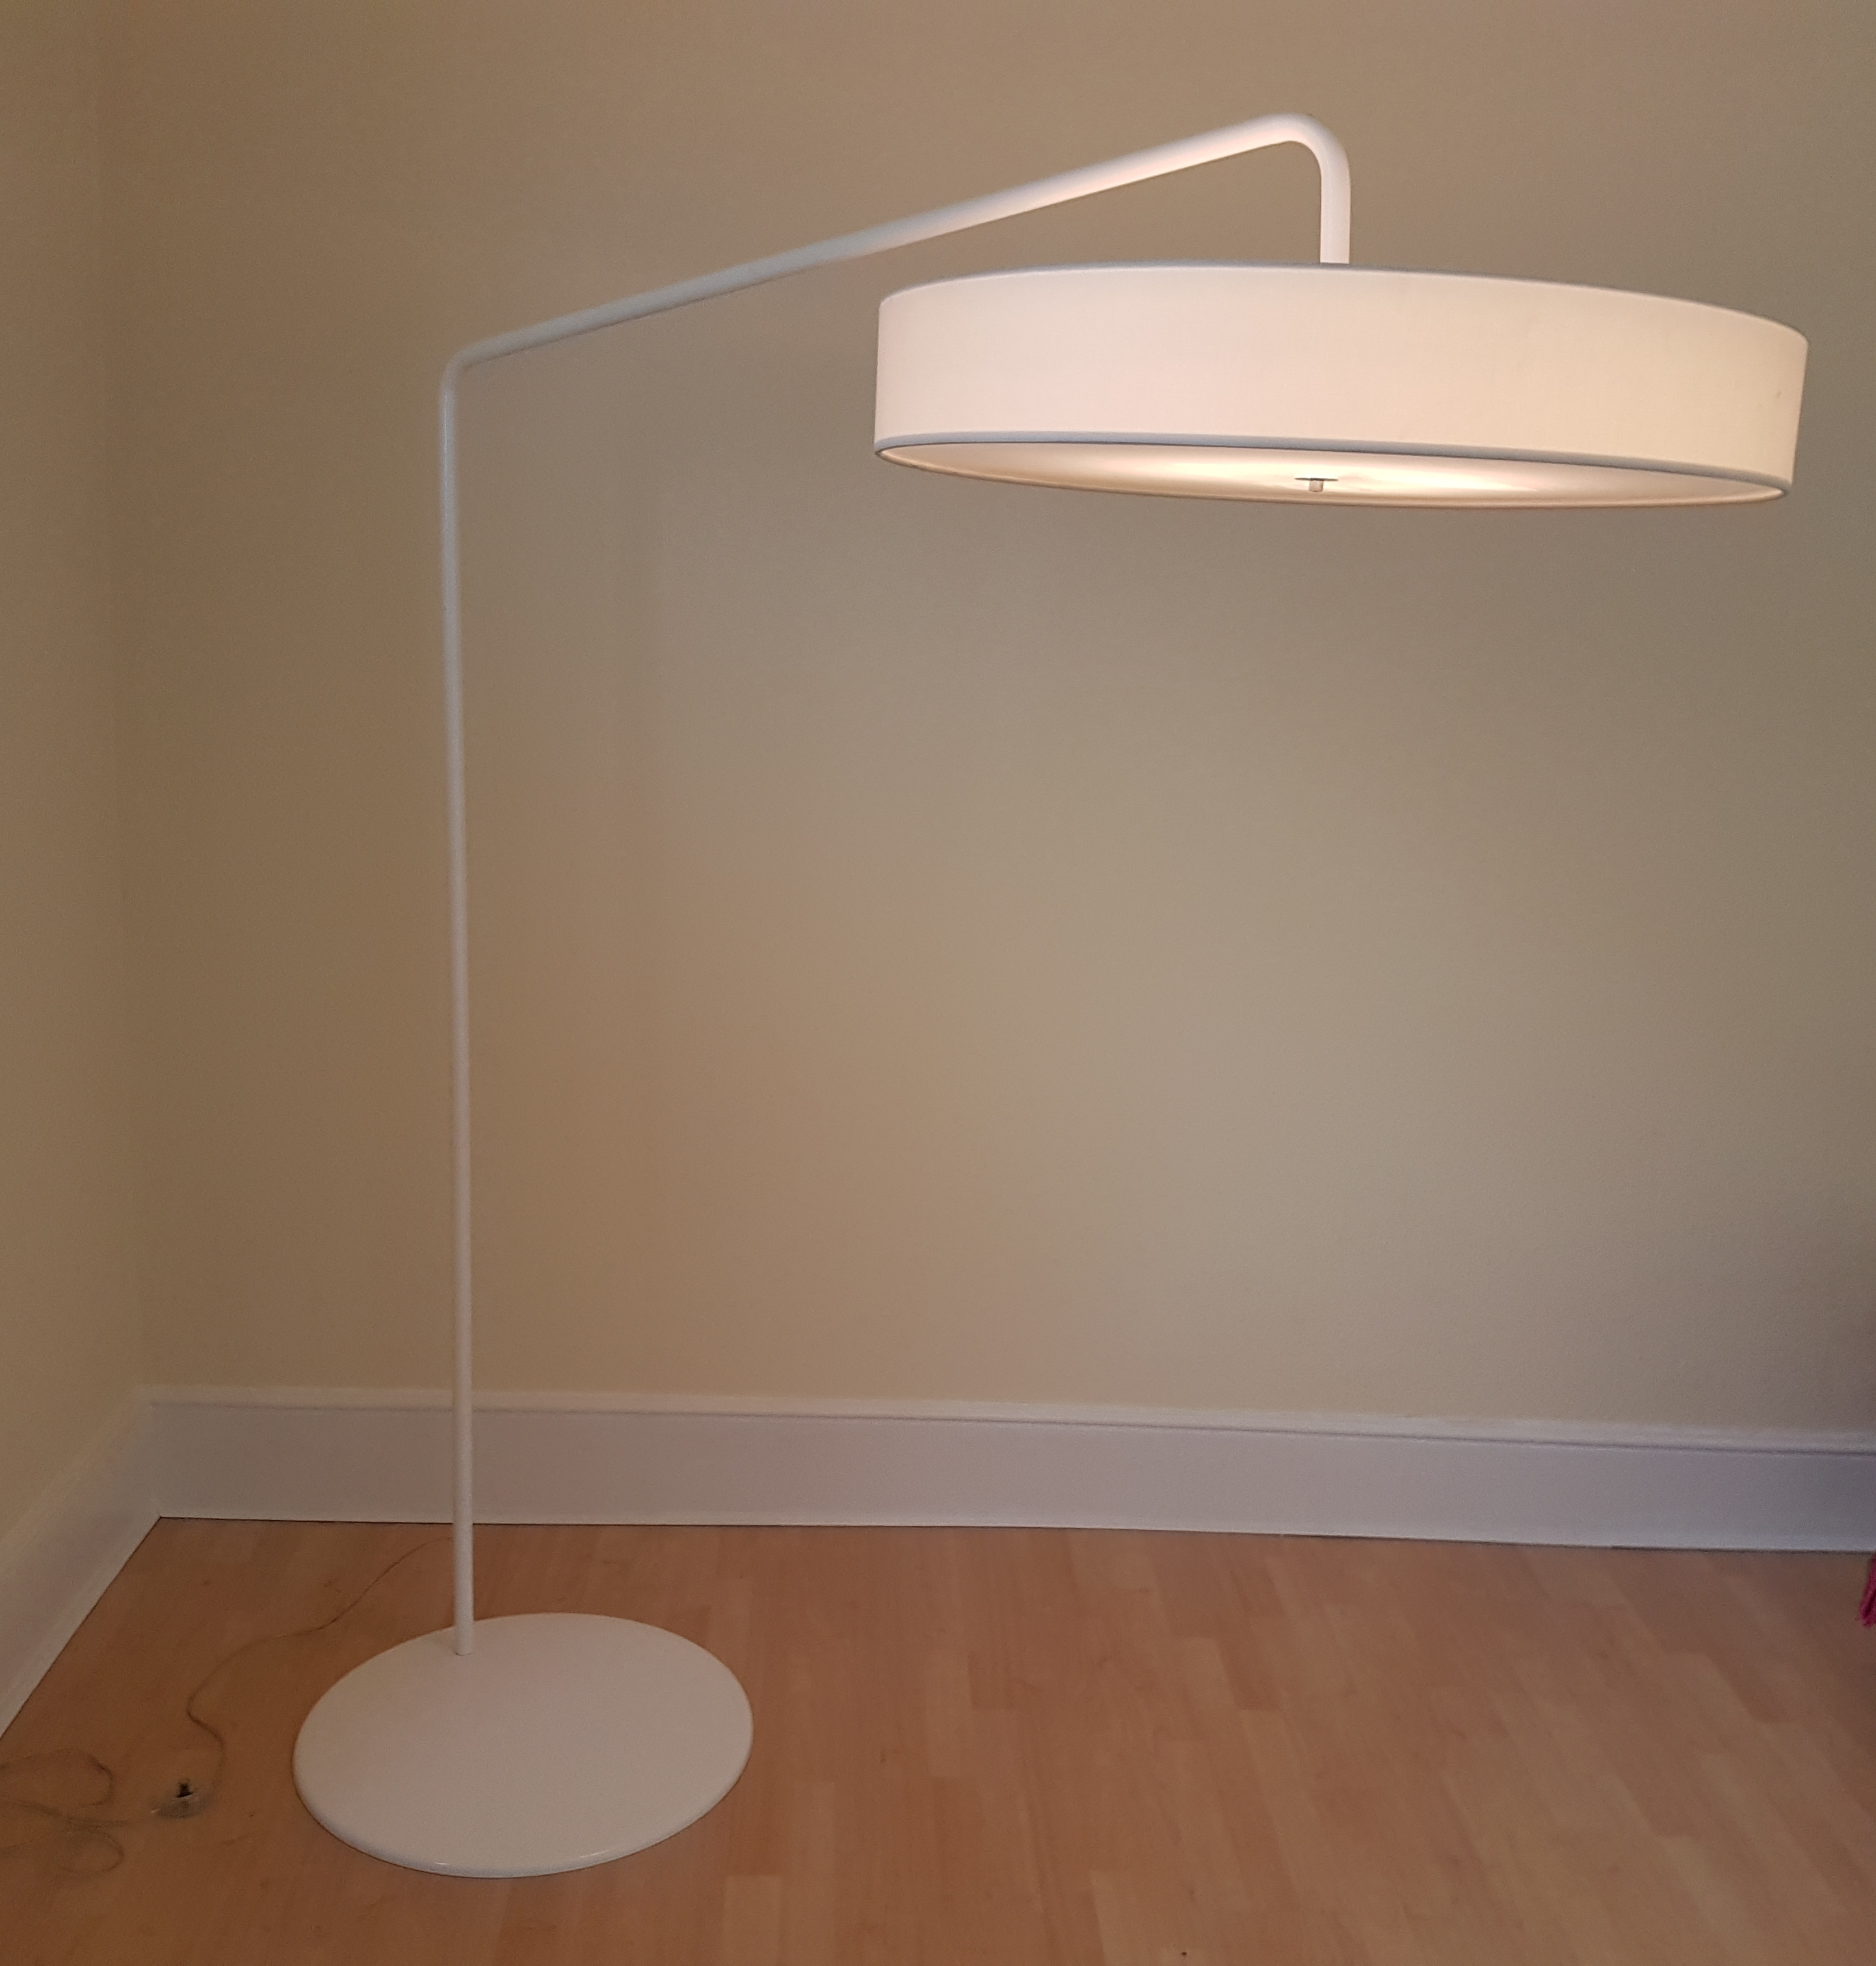 Large Italian Floor Lamp By Modeluce W Dimmer Switch